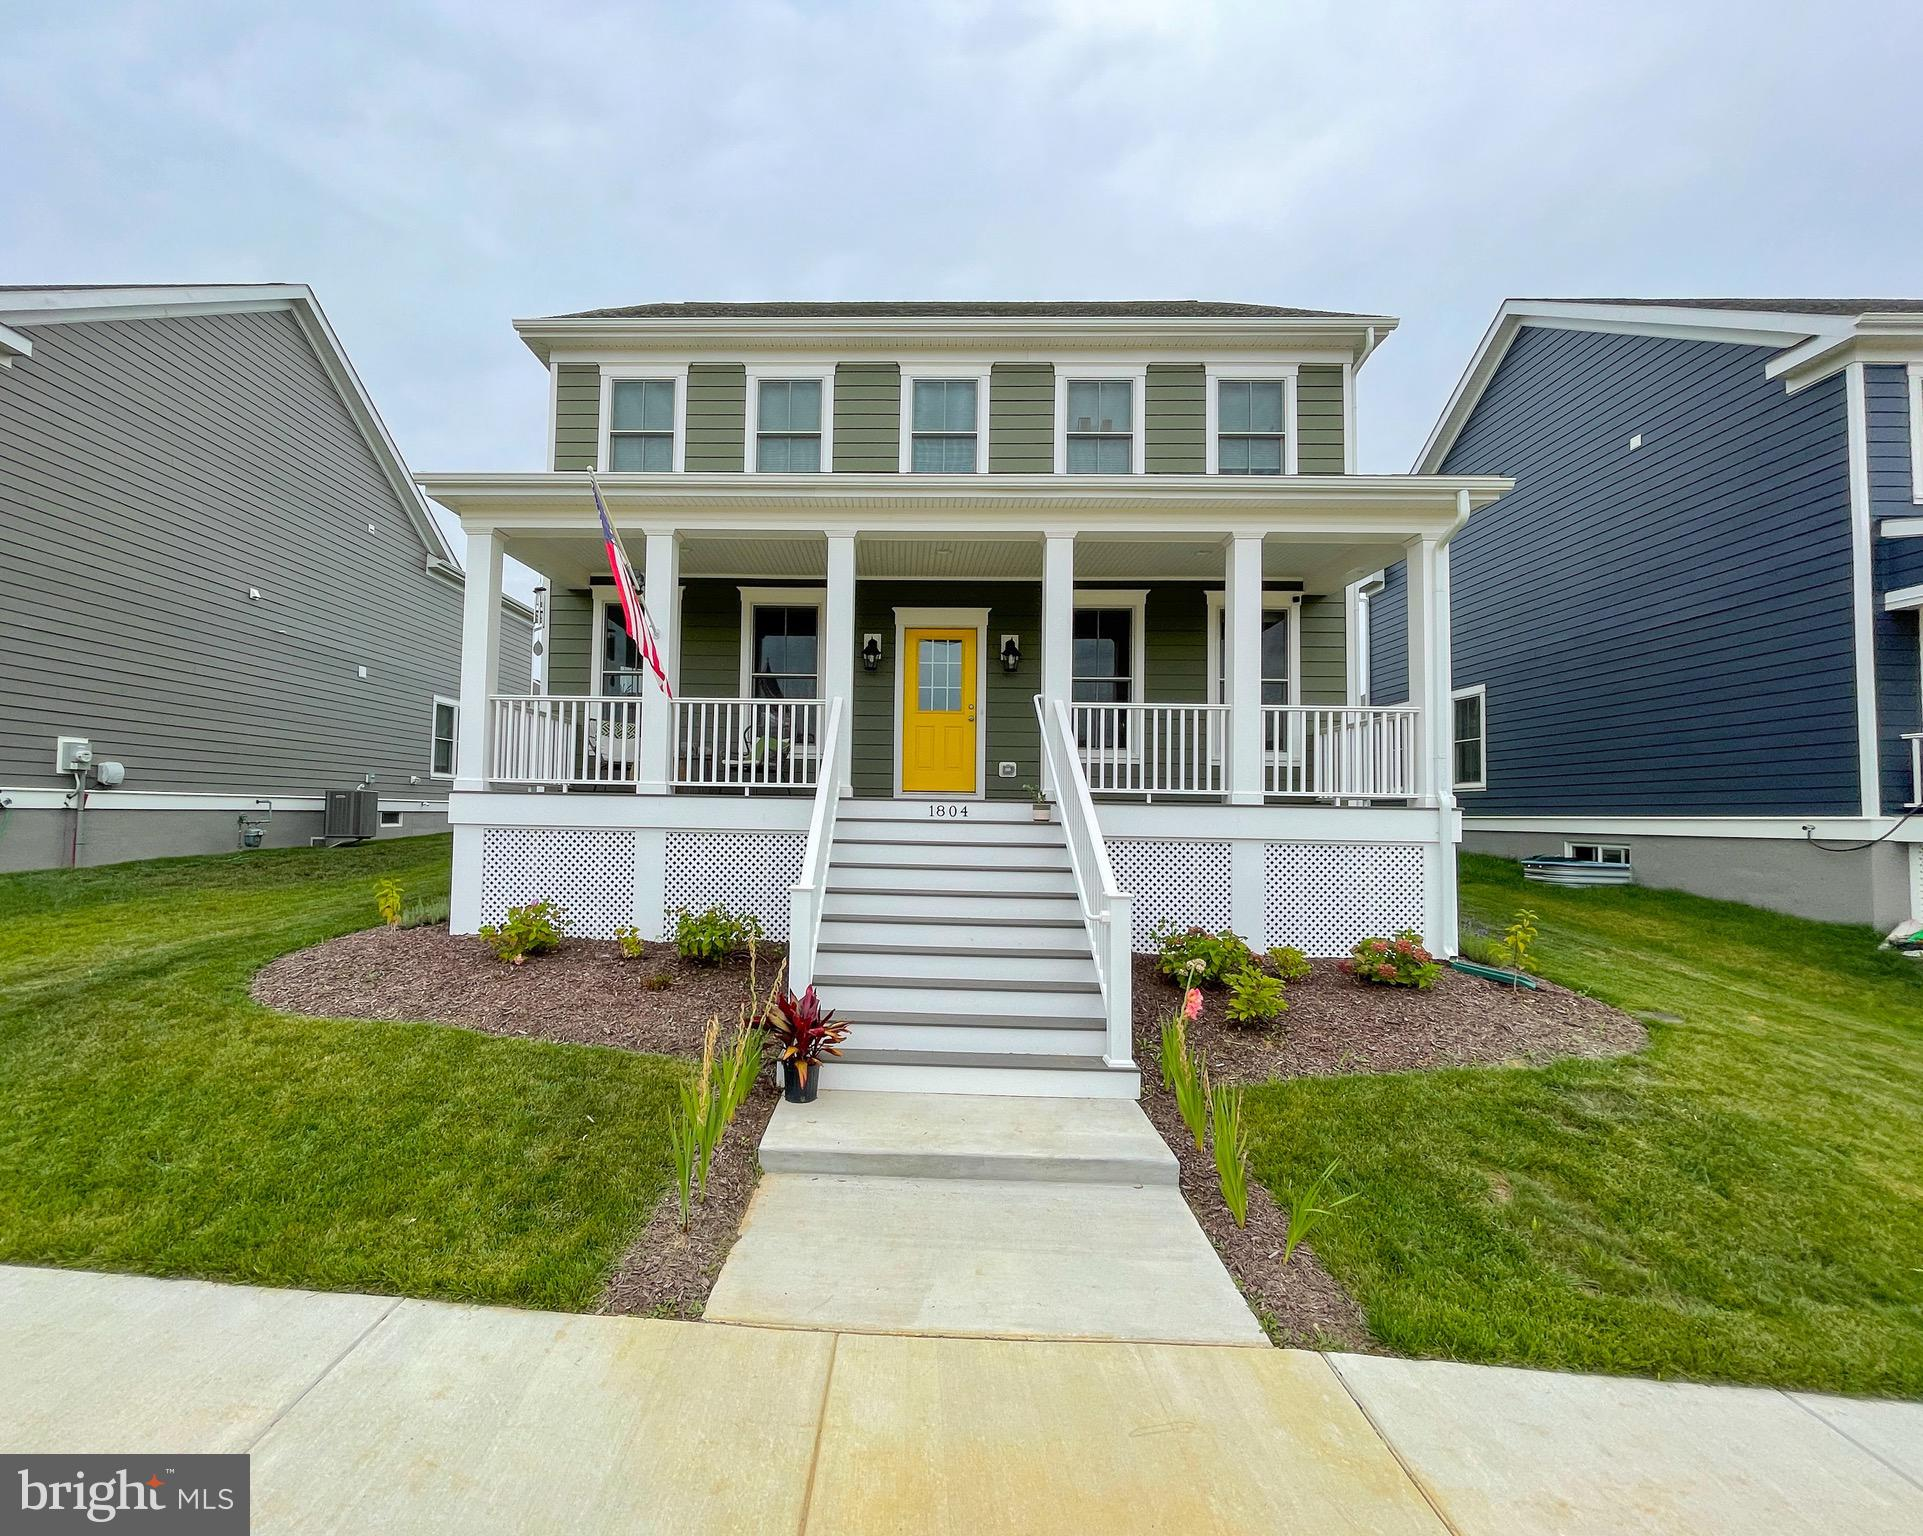 """Welcome to 1804 Tandem St in the beautiful town of Whitehall, conveniently located near all shopping, grocery stores, roadways and within the award winning Appoquinimink School District! This gem was just completed March 2021 and still under the 1/2/10 builder warranty. You will fall in love with this home from the second you see the covered front porch! The porch was constructed for a future heavy-duty swing to be installed. Once you enter the front door, you will take in the grand open floor plan, resilient waterproof flooring throughout the main level, a HUGE Bay window with an elongated bench seat, large formal dining room, HUGE living room with an ample amount of (Anderson) windows, large kitchen, eat-in breakfast area, butler's pantry, mud room and half bath. The kitchen has plenty of recessed lighting, stainless appliances, beautiful 42"""" Tahoe maple cabinets, gas cooking, granite countertops, food pantry, and a large island. There is a 21x21 rear entry two car garage (fully dry walled) with inside access leading into the mud room. The oak staircase will lead you to the upper level which consists of four large bedrooms, two full bathrooms and a generous sized laundry room. The primary bedroom has TWO huge walk-in closets, and an amazing bathroom! This bathroom has a huge soaking tub, double sink vanity with a marble countertop, linen closet and a gorgeous fully tiled walk in shower and ceramic tile flooring. The hall bath also has ceramic tile flooring, marble countertop and a shower/tub combo. The remaining three bedrooms all have walk-in closets and every room has rough in's for ceiling fans. The basement is unfinished but ready for your personal touch! There is a three-piece rough in for a future bathroom, a rough in/plumbing line ready for a future bar and dishwasher! You also have a 30 year roof warranty, 5&1/4 baseboards in the main level, 8&1/4 hardiwrap siding, R13-19 insulation, Gas water heater and Gas heating. This home has so much to offer! Why wai"""